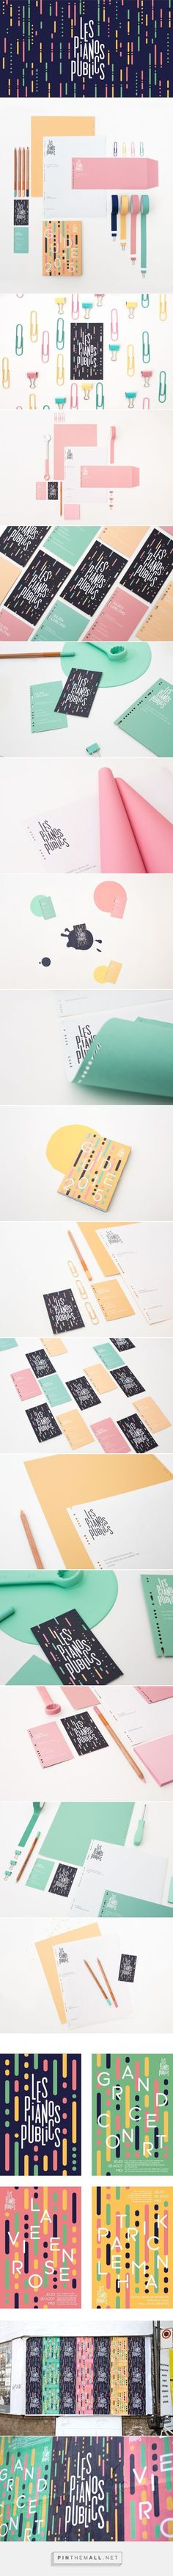 Les Pianos Publics Branding on Behance | Fivestar Branding. JUST GORGEOUS! | Twitter, Instagram & Pinterest: @TrustVital